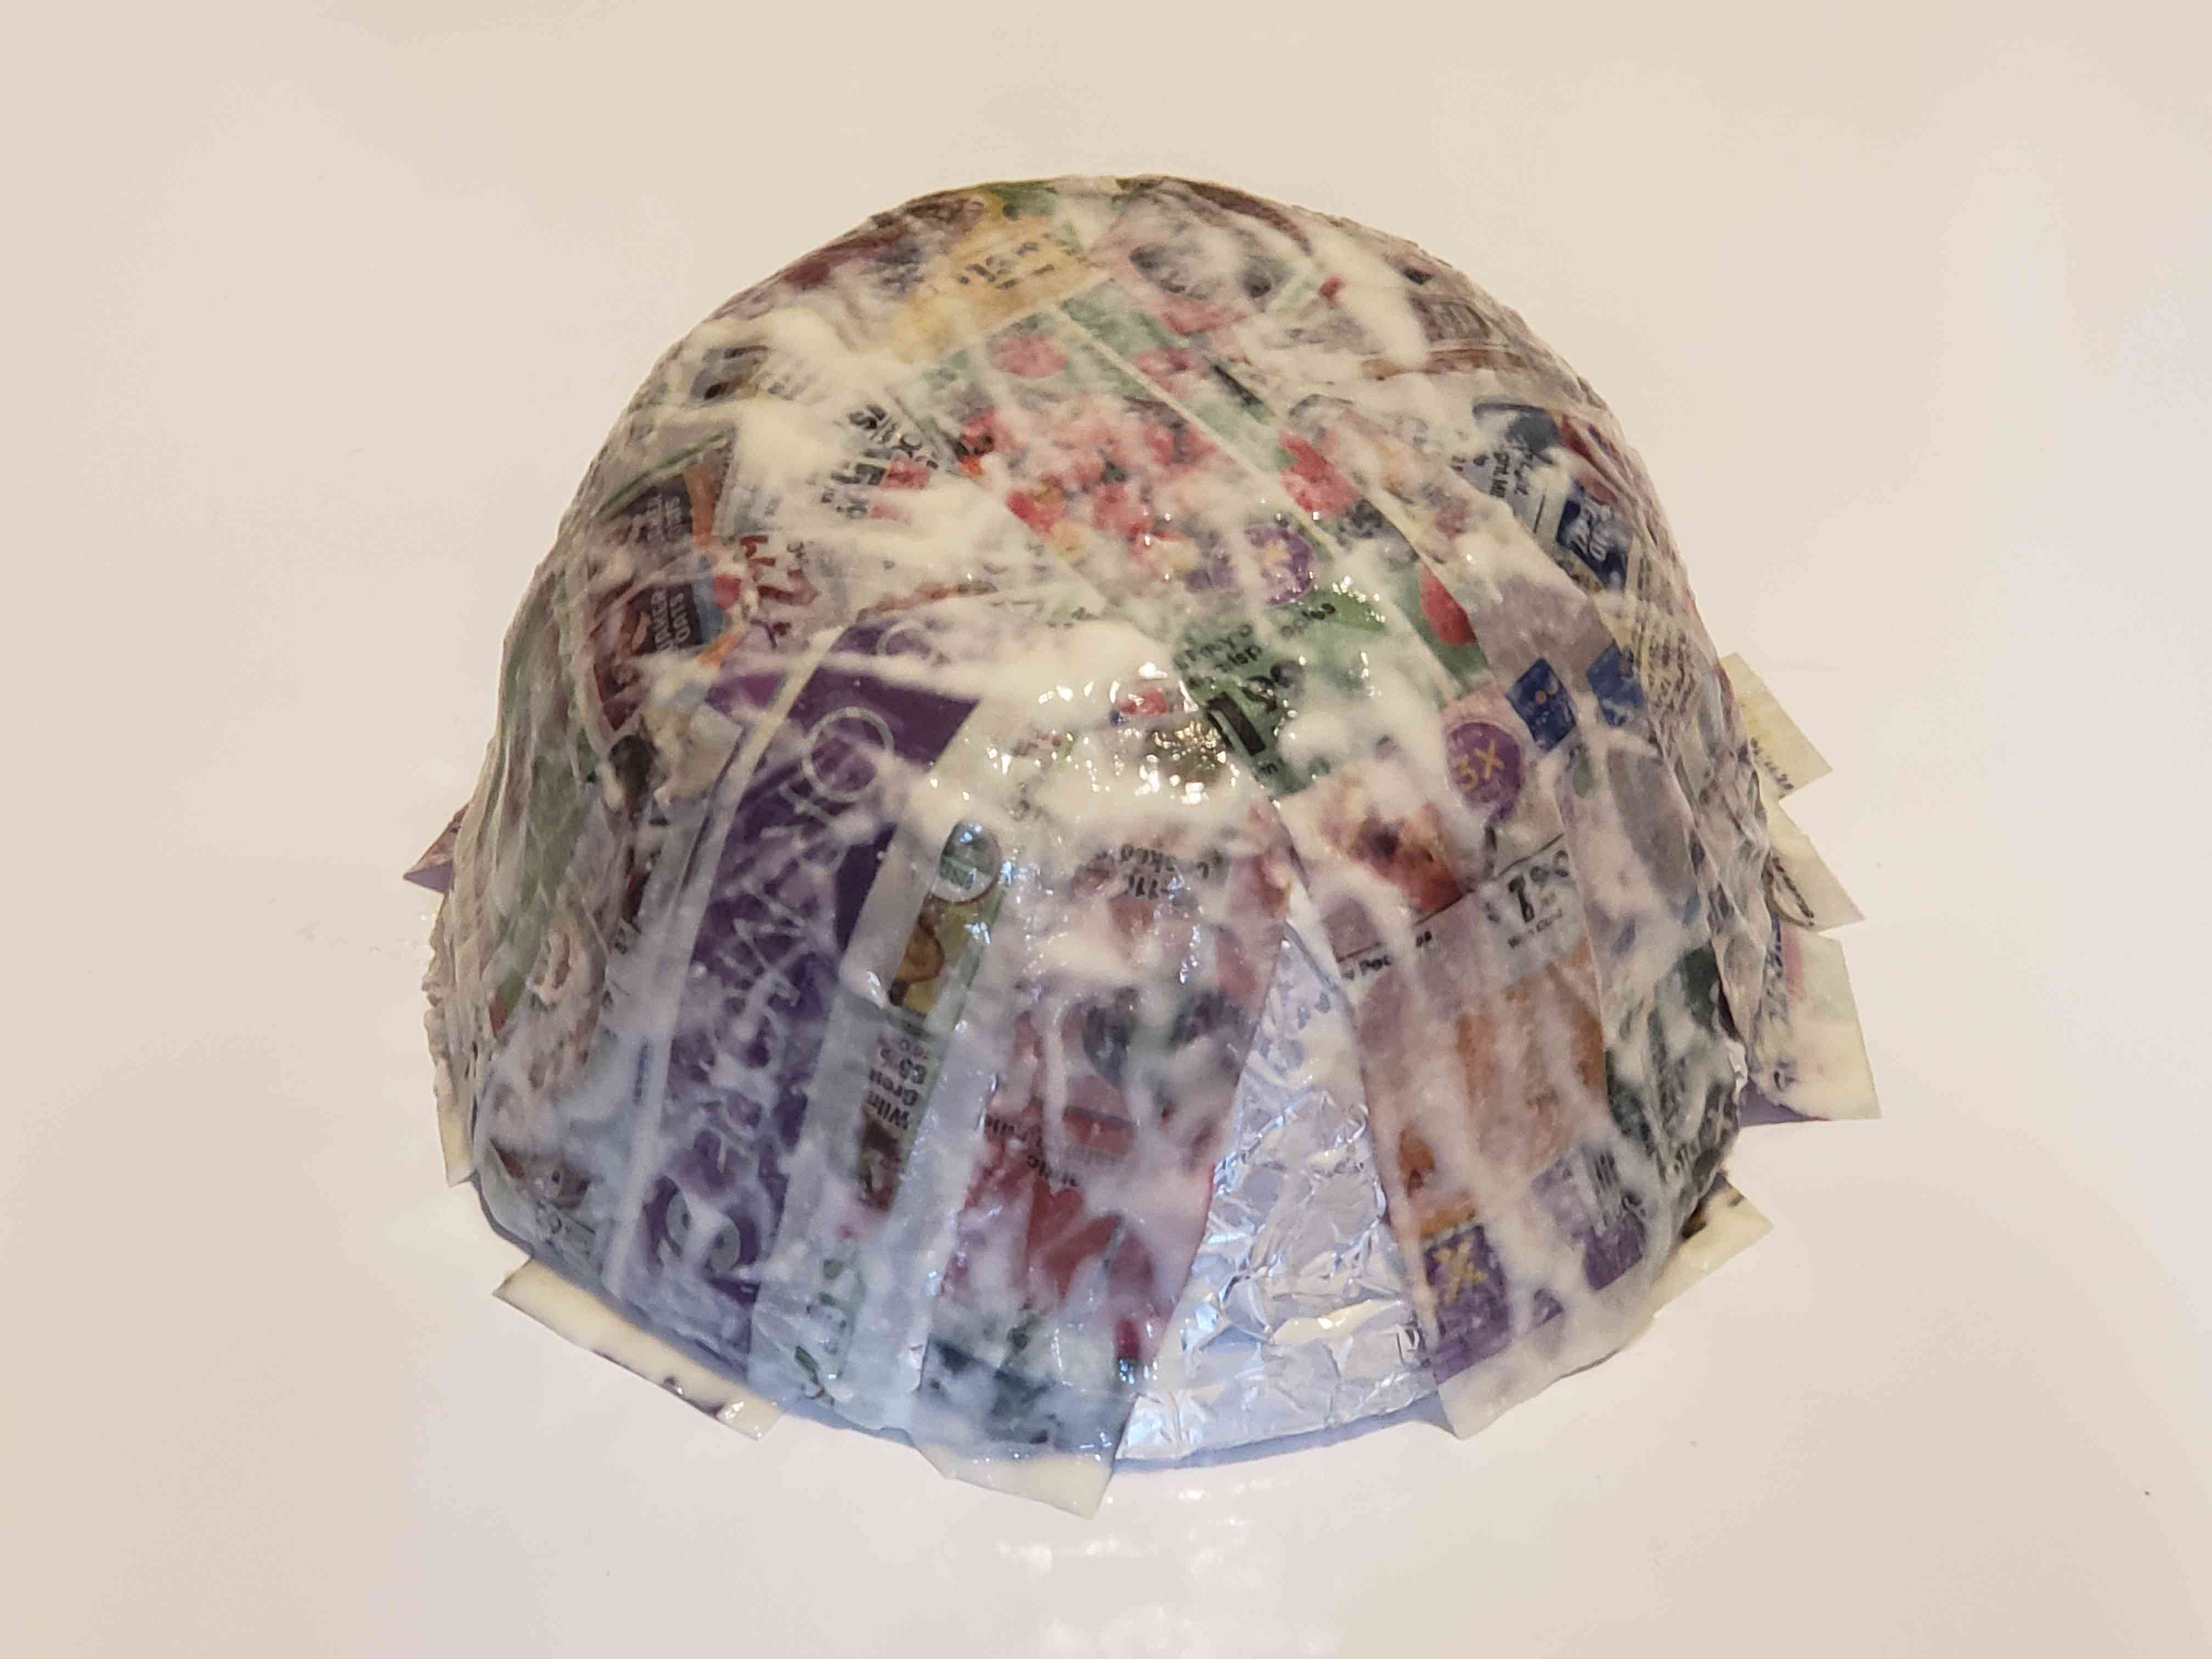 Cover Bowl with Newspaper